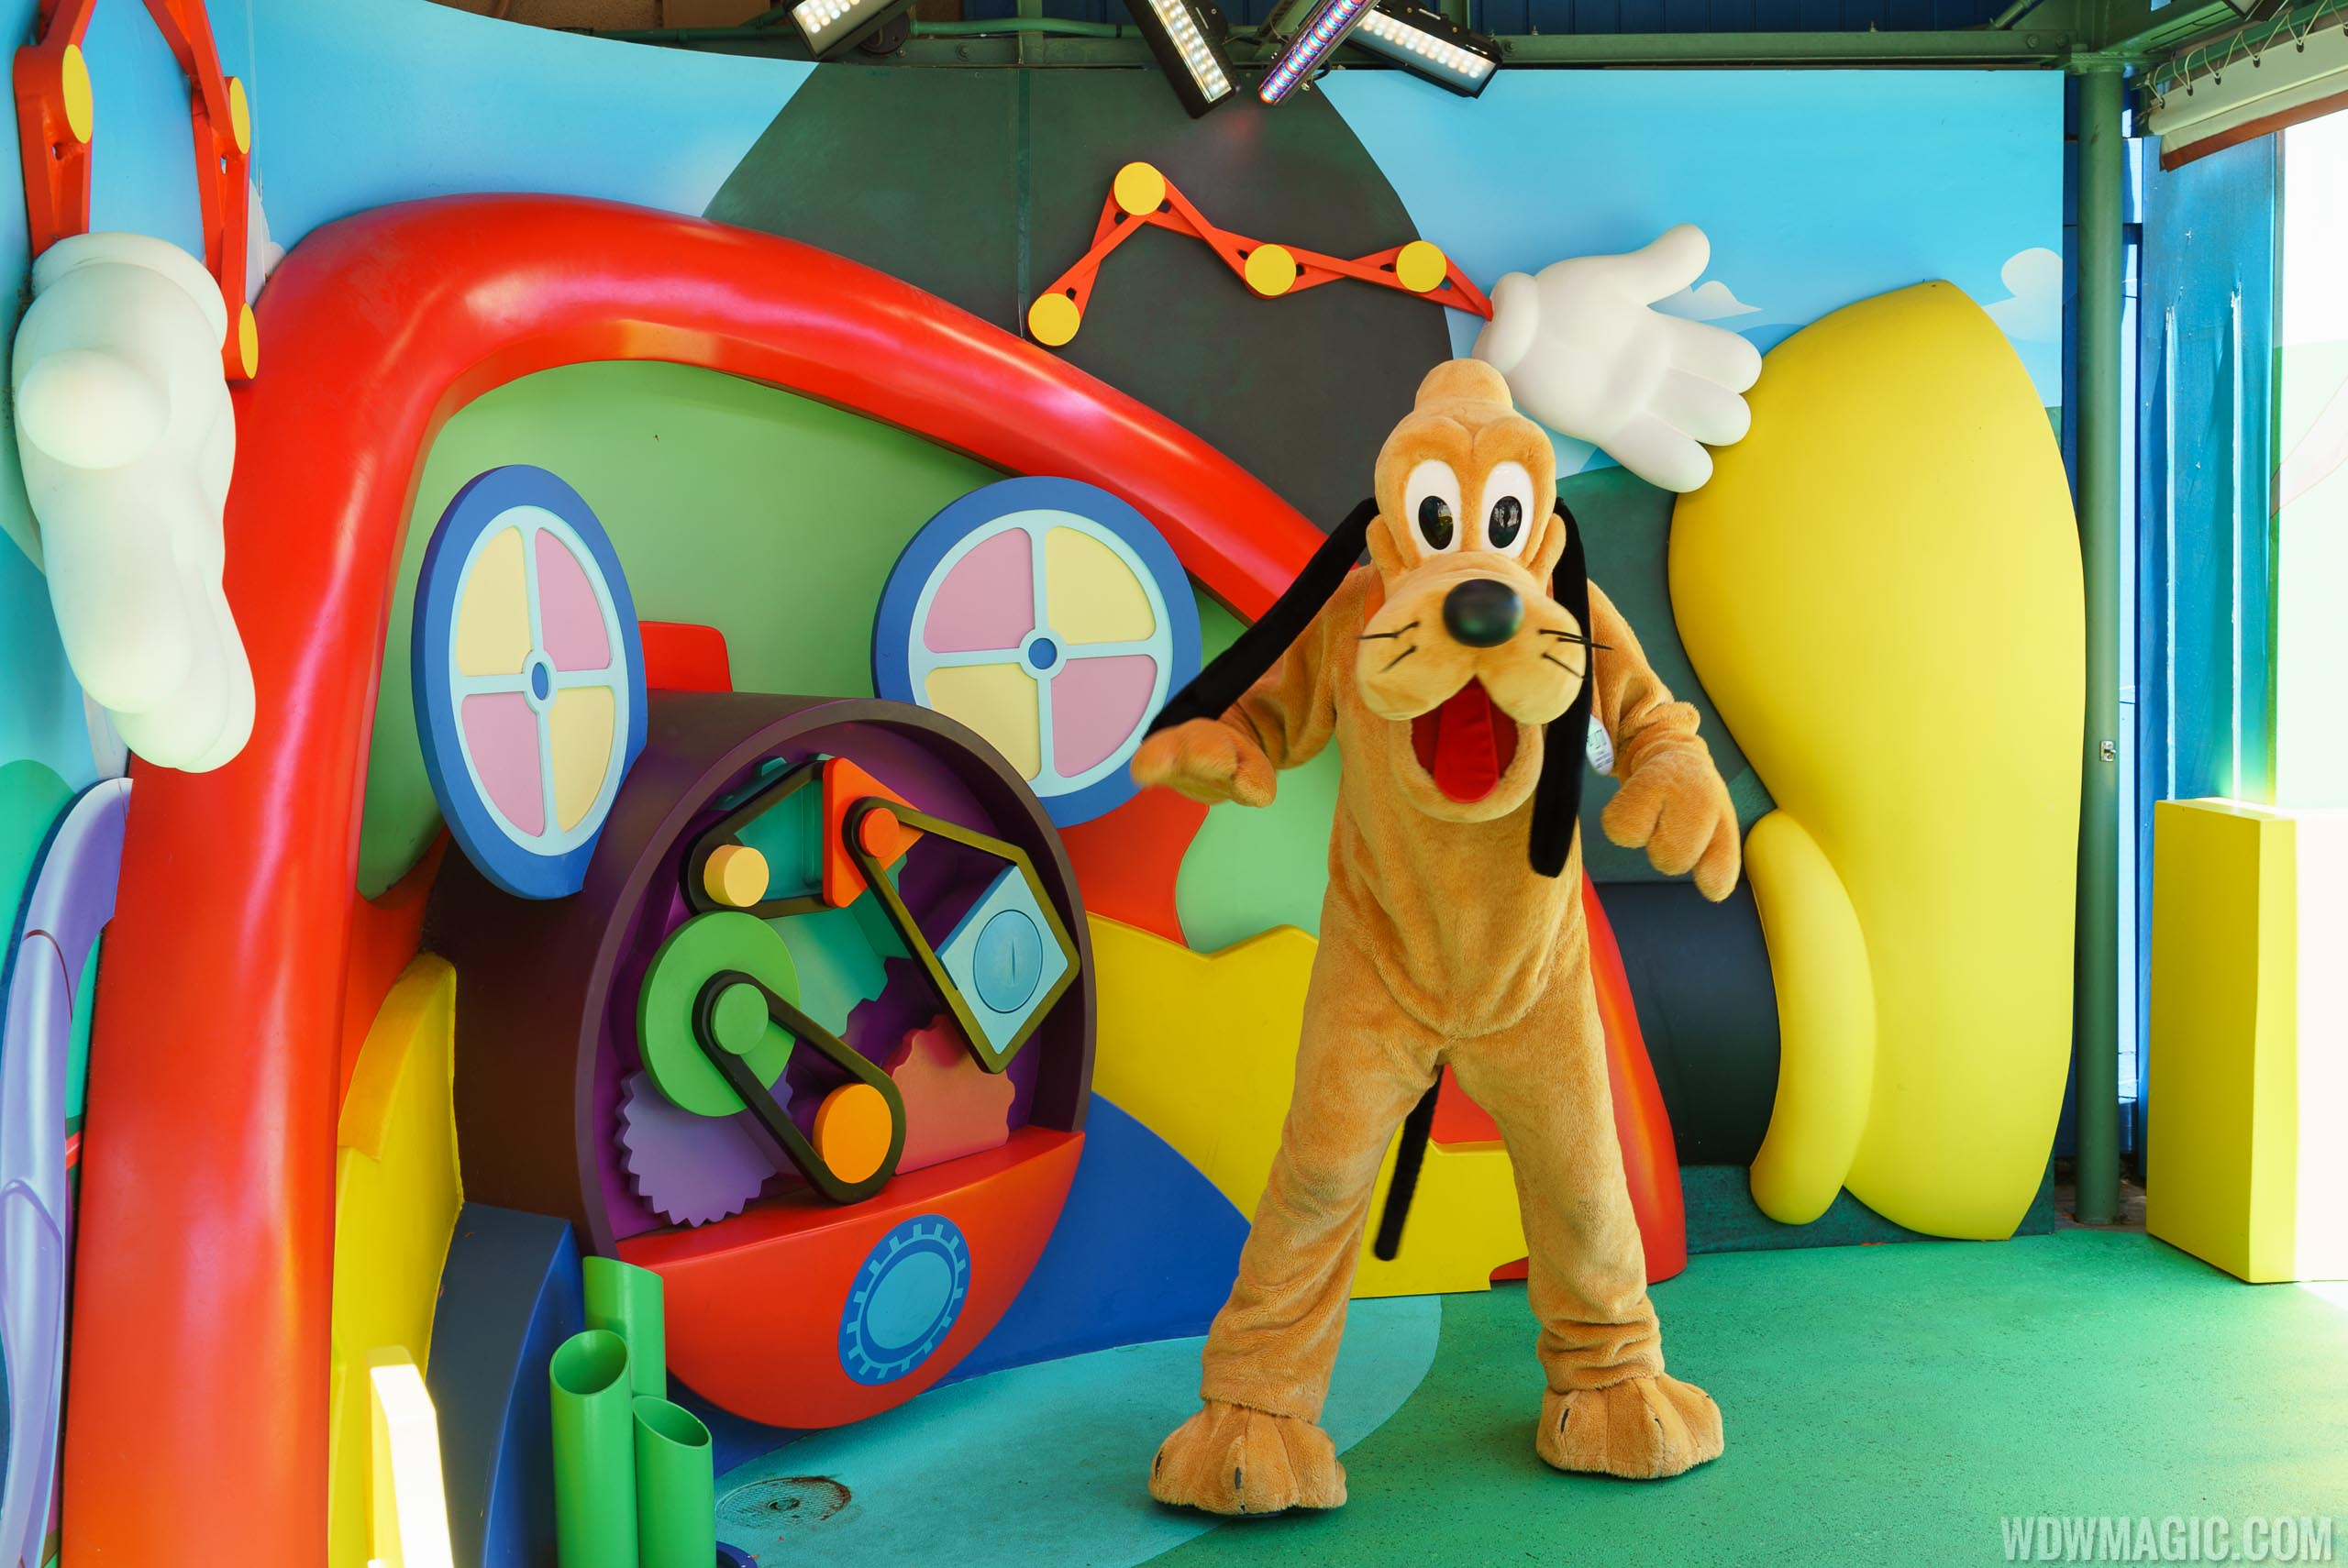 Photos pluto now appearing at the disney junior meet and greet photos pluto now appearing at the disney junior meet and greet in disneys hollywood studios kristyandbryce Choice Image